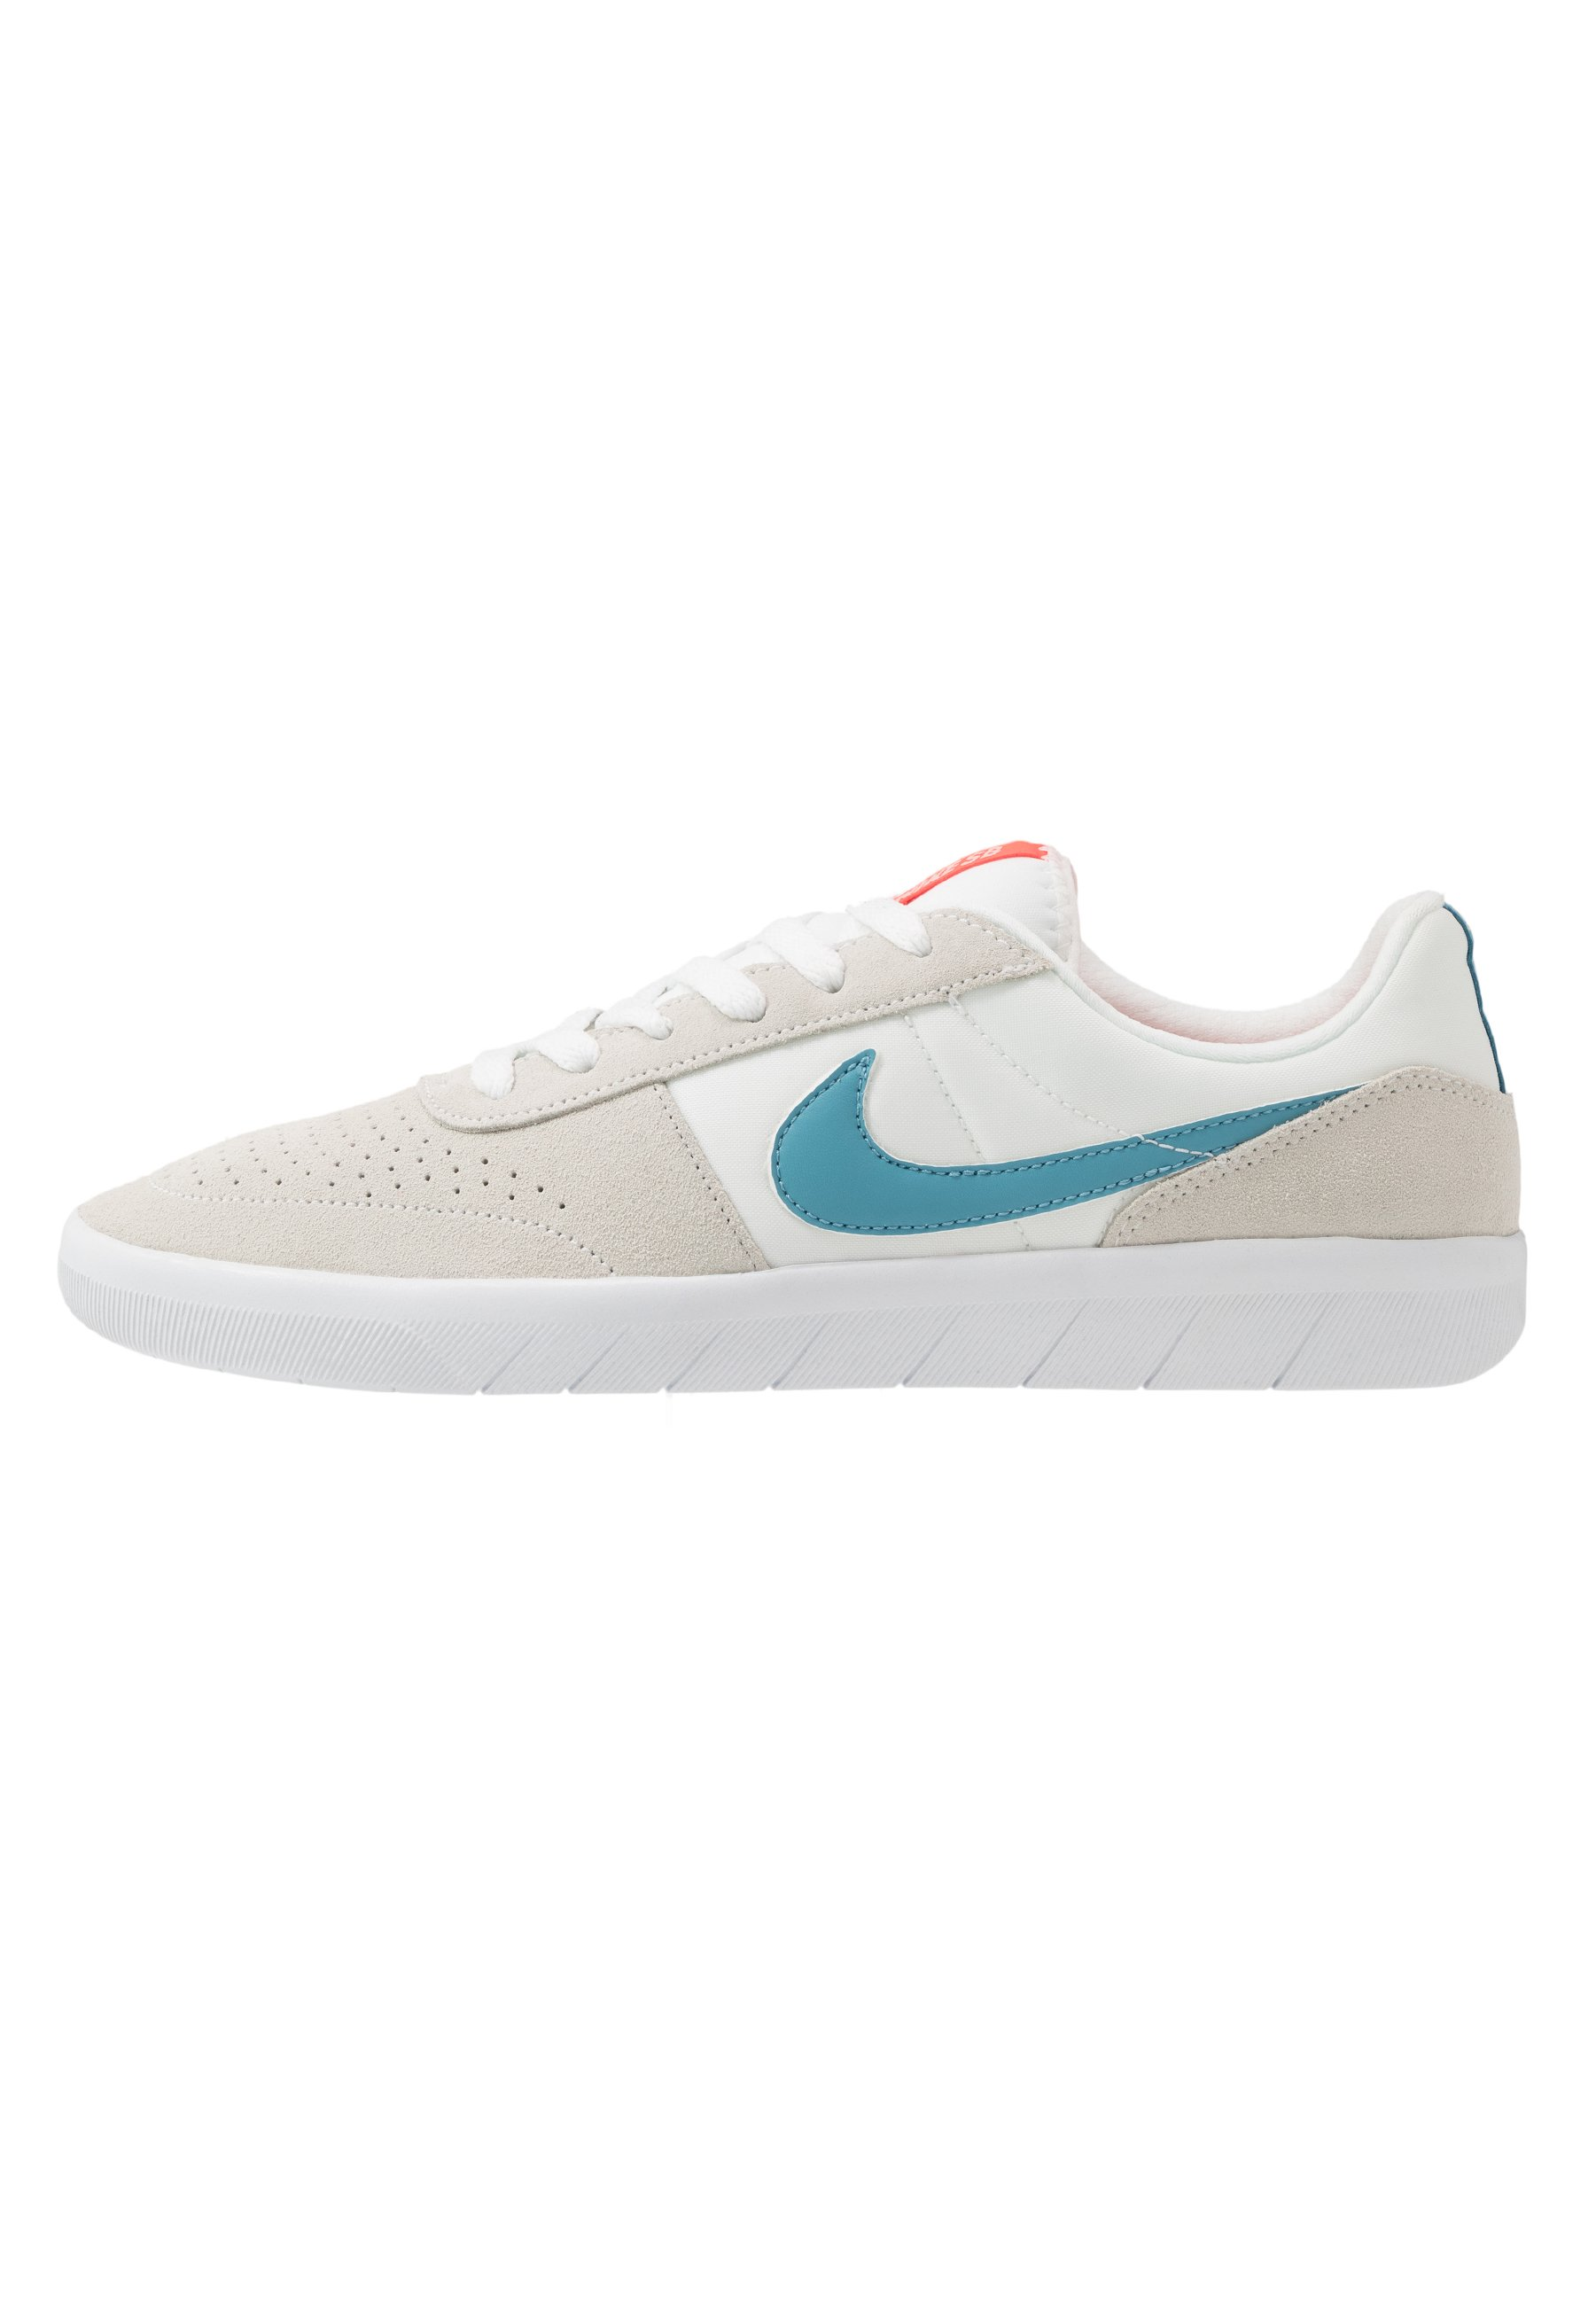 Nike SB TEAM CLASSIC Chaussures de skate summit white